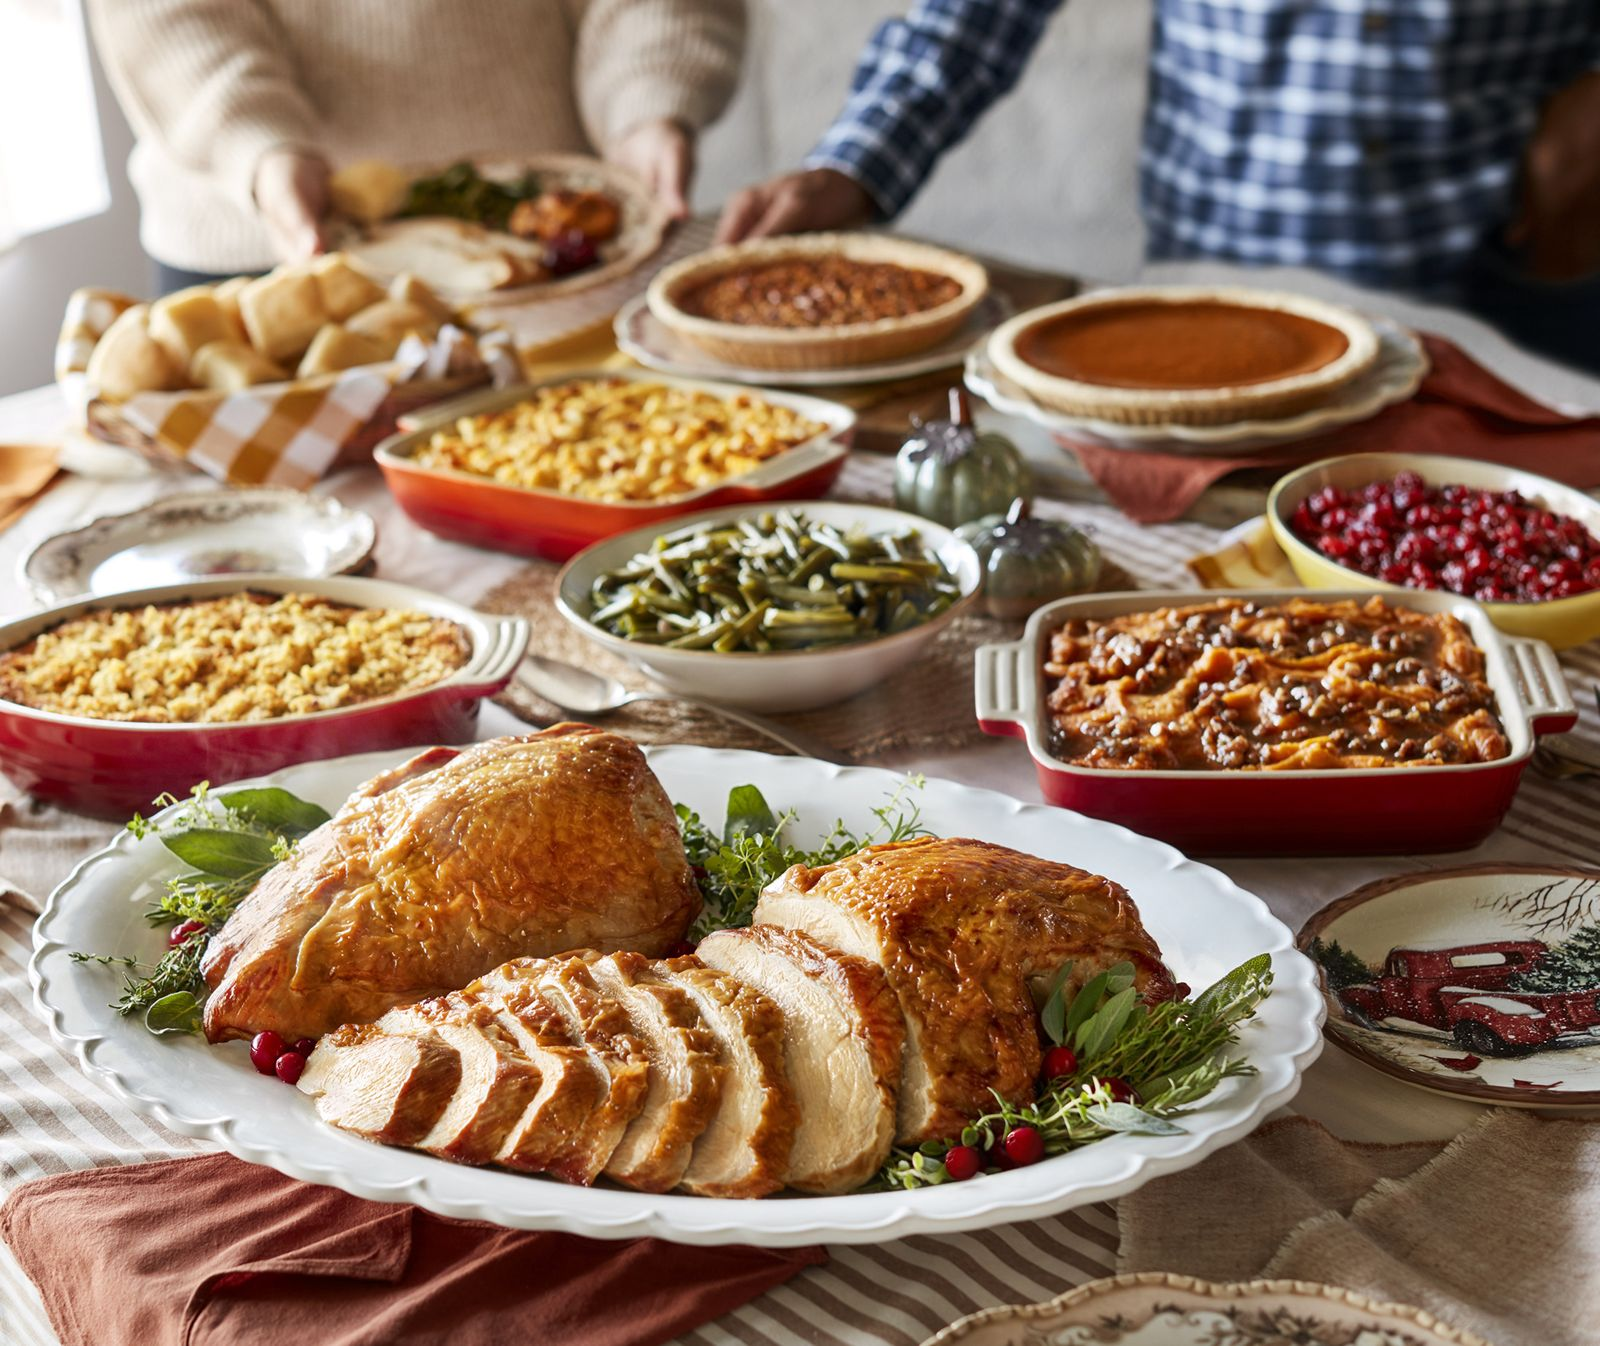 """Celebrating 50 Years of """"Pleasing People,"""" Cracker Barrel Old Country Store Offers Options to Make This Thanksgiving More Relaxing"""